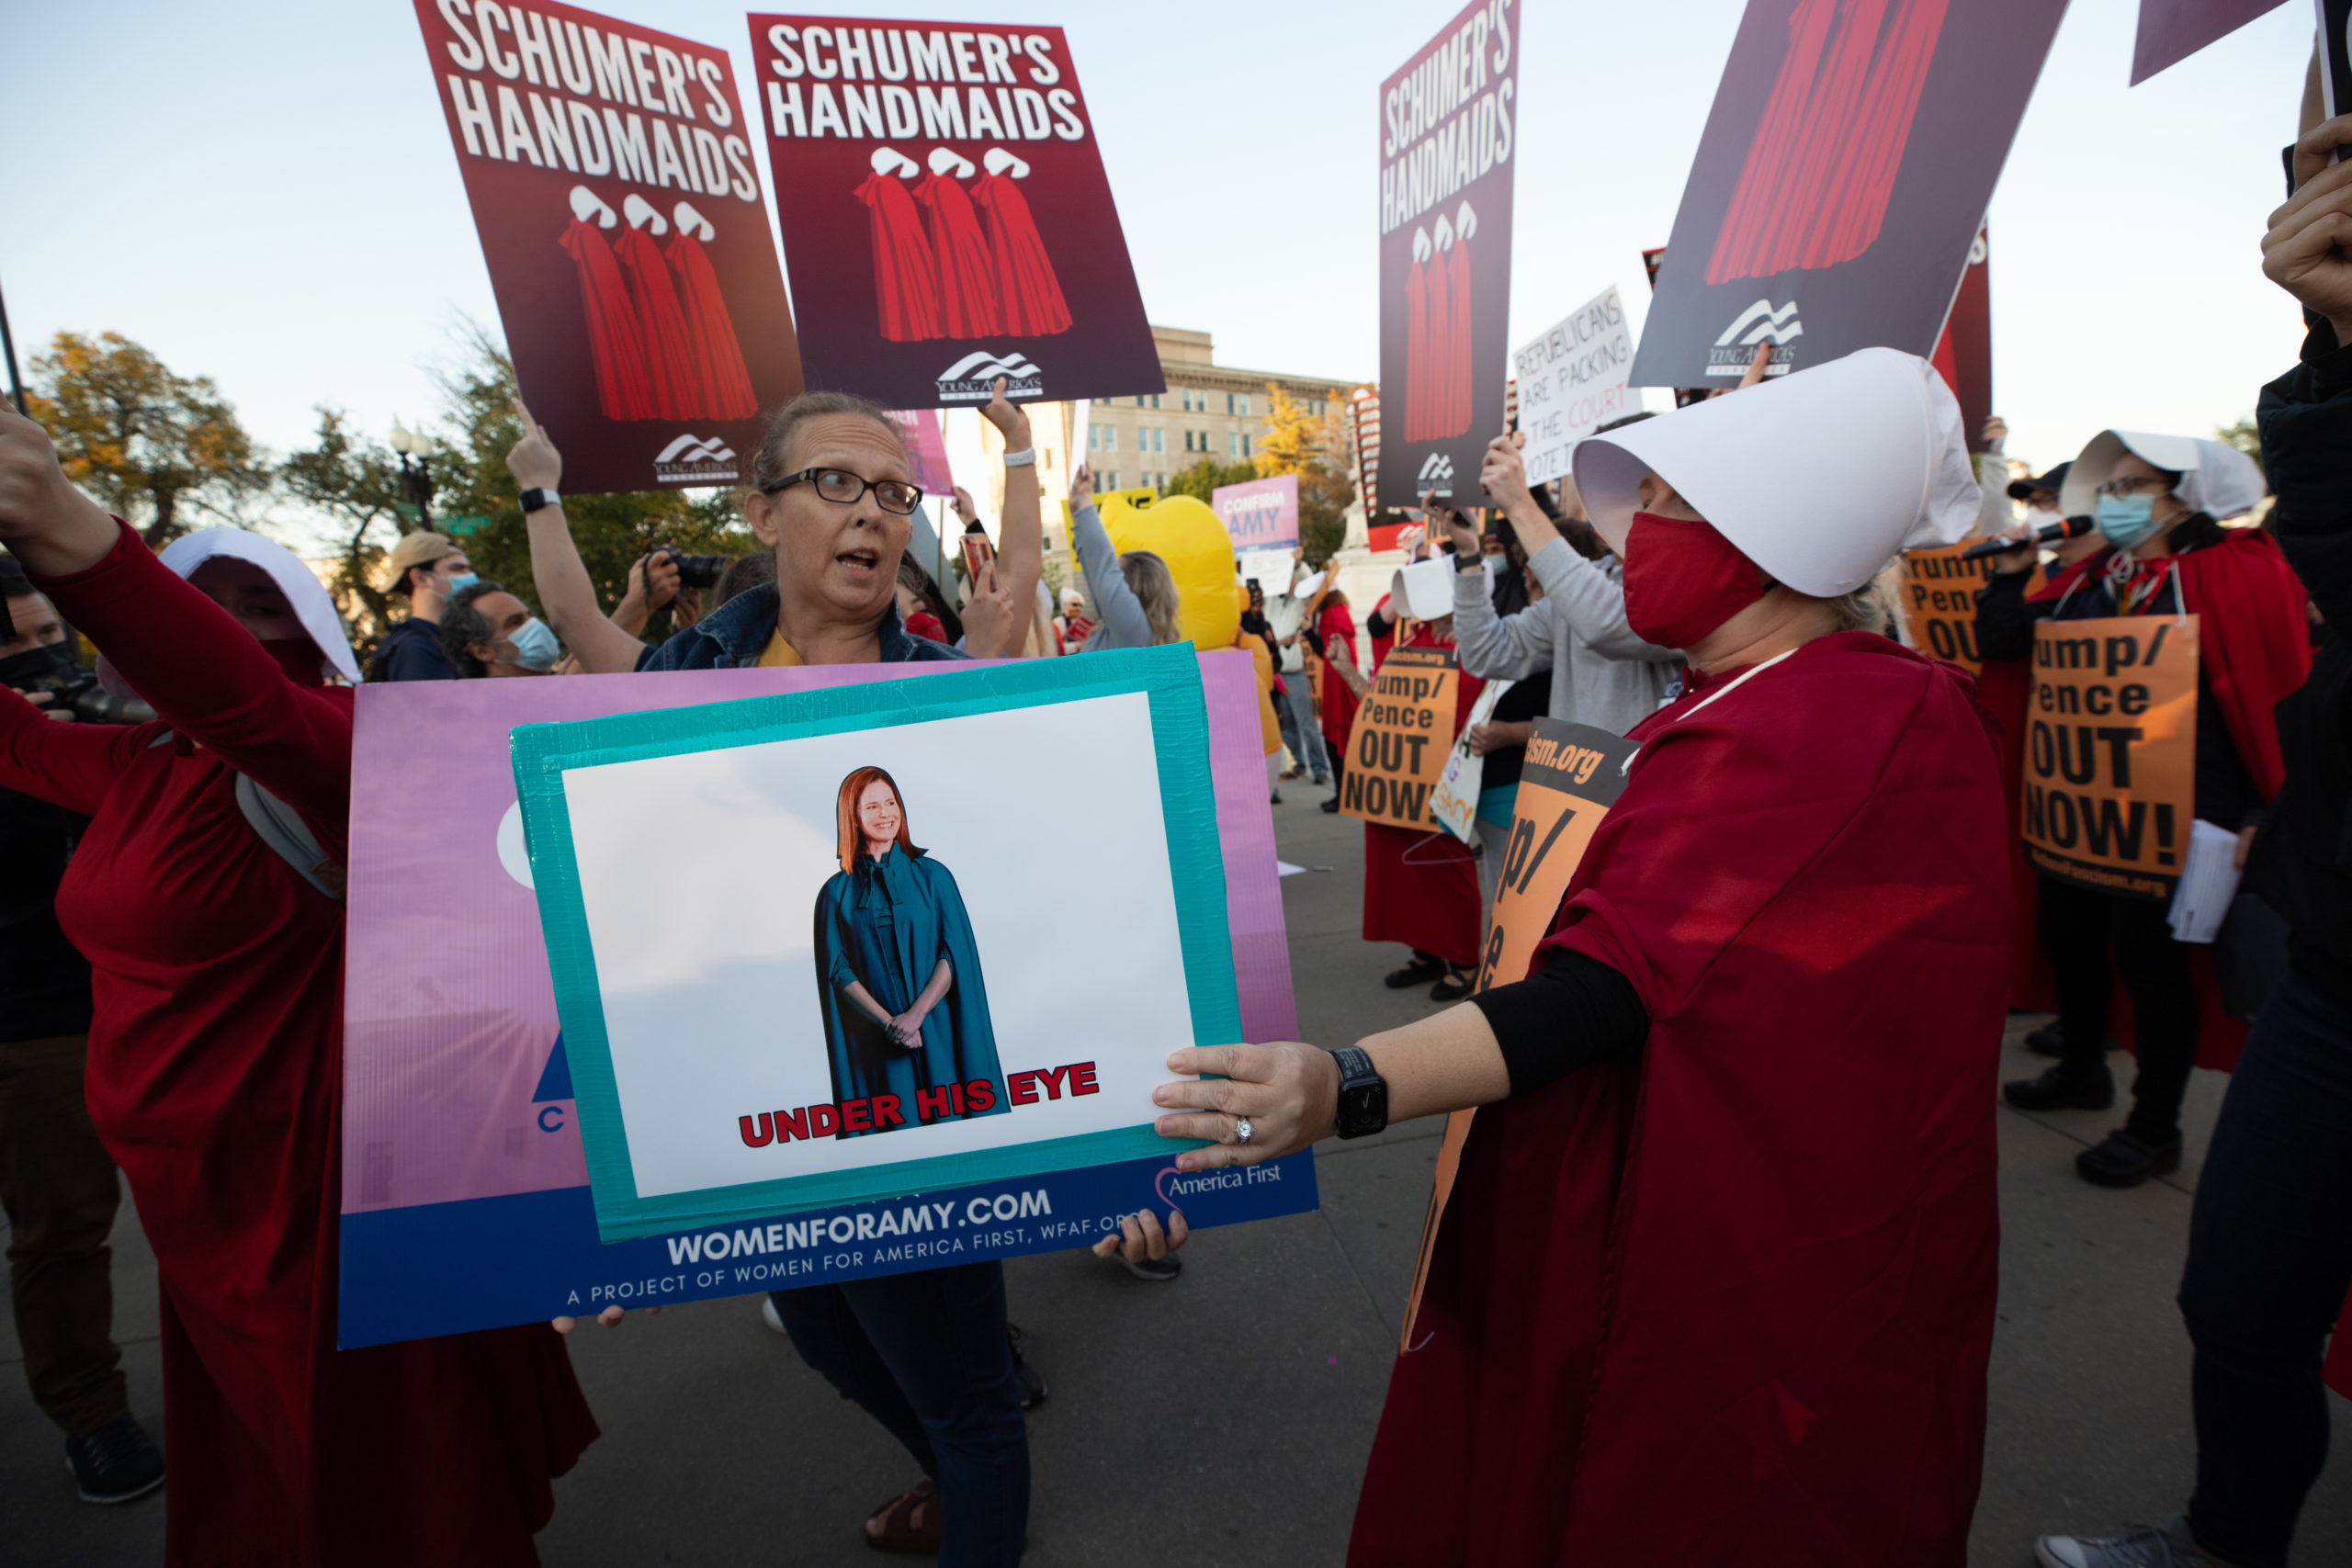 An anti-Amy Coney Barrett protester dressed as a handmaid blocks the sign of an Amy Coney Barrett supporter in Washington, D.C. on October 26, 2020. (Kaylee Greenlee - Daily Caller News Foundation)